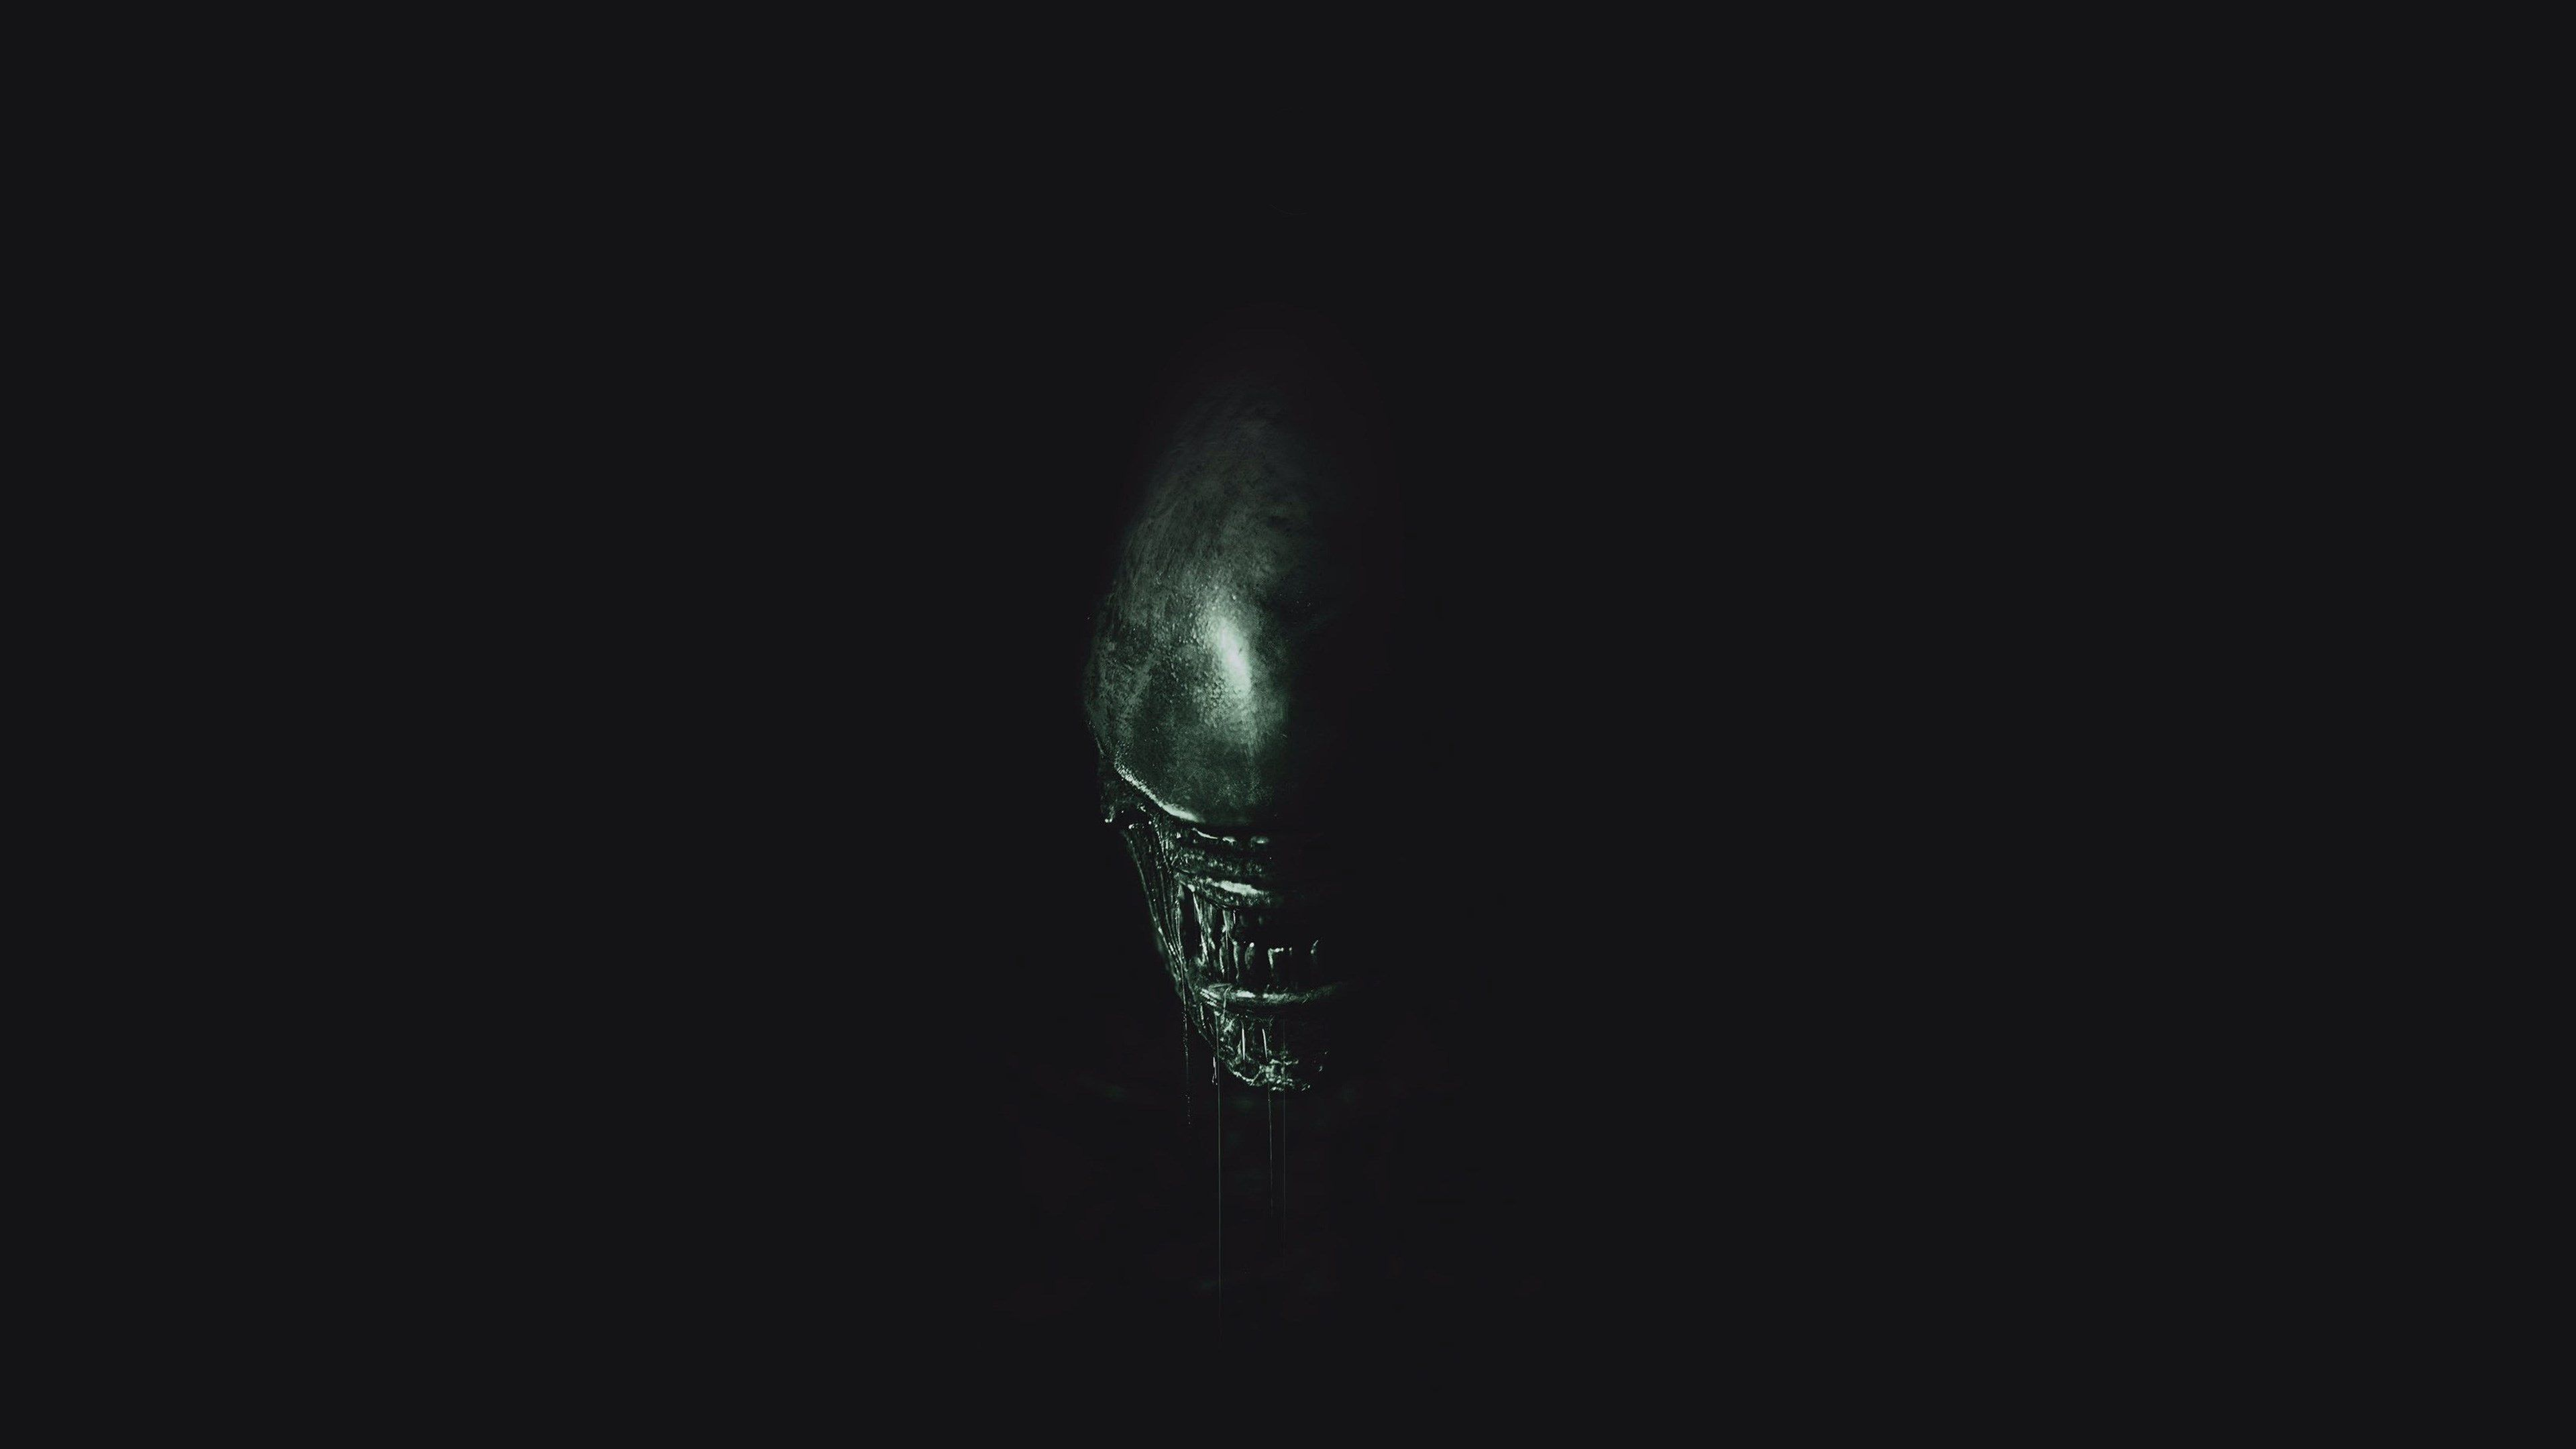 3840x2160 Alien Convenant 4k Hd Background Wallpaper Alien Convenant Alien Covenant Alien